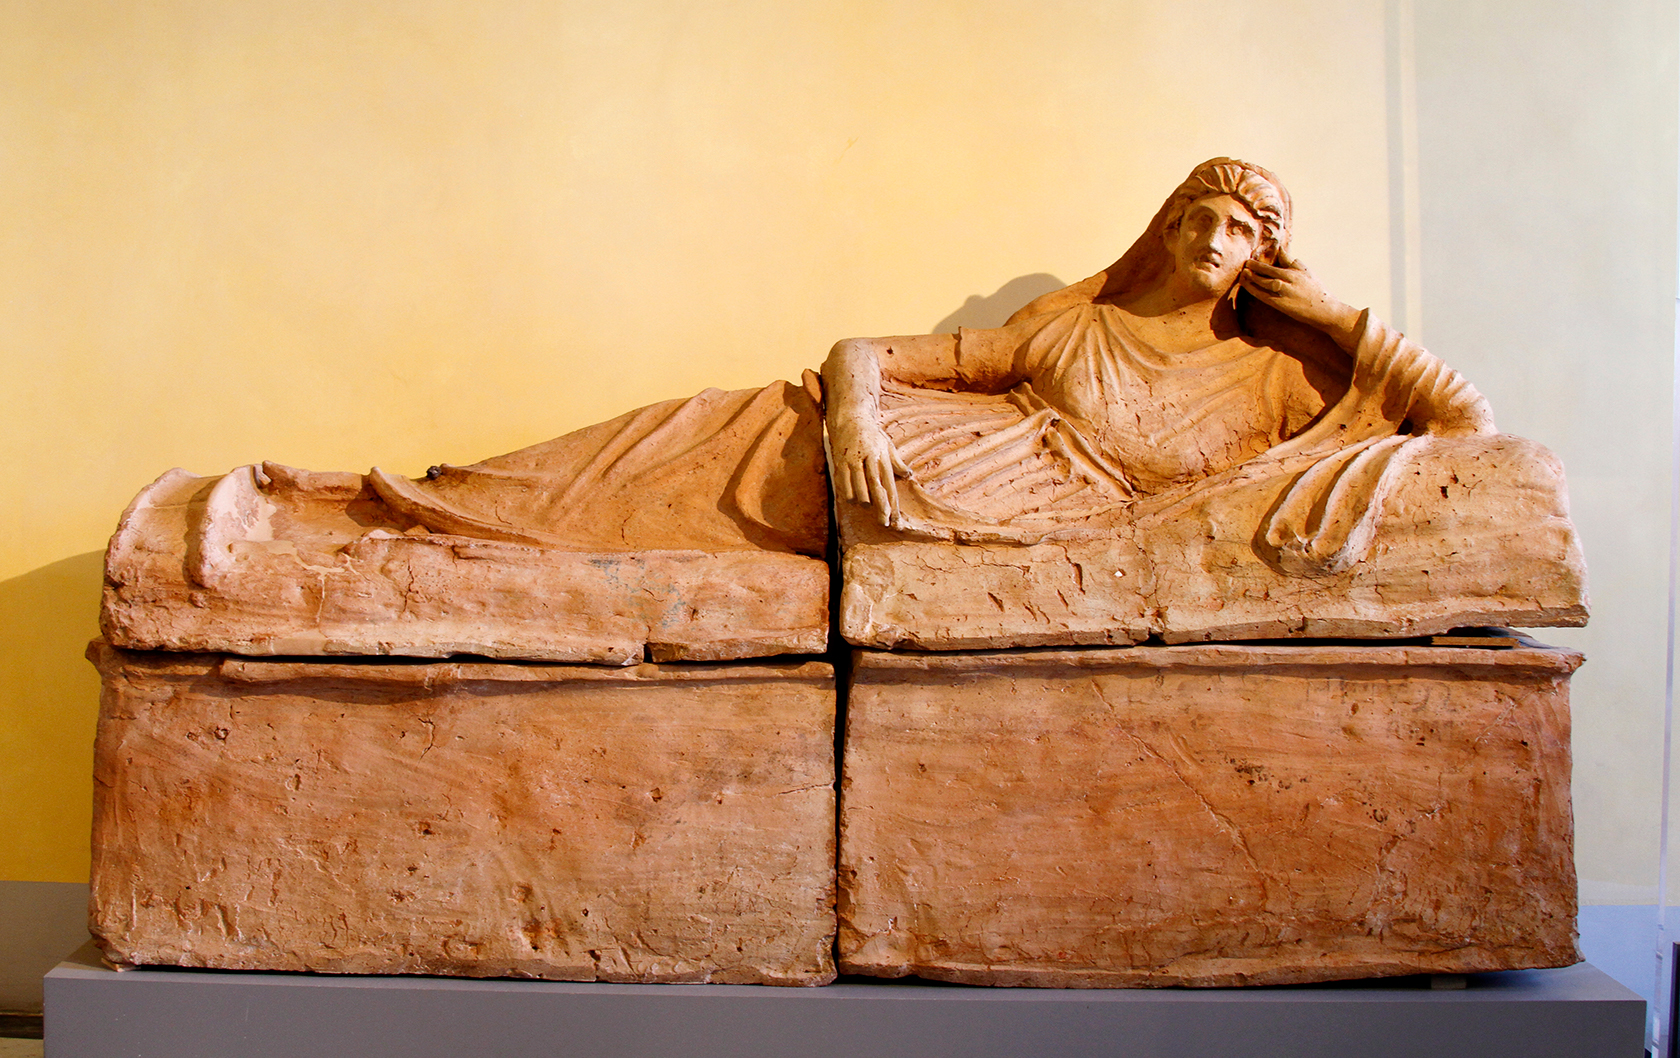 Etruscan tomb statue on display at the Musei Capitolini in Rome